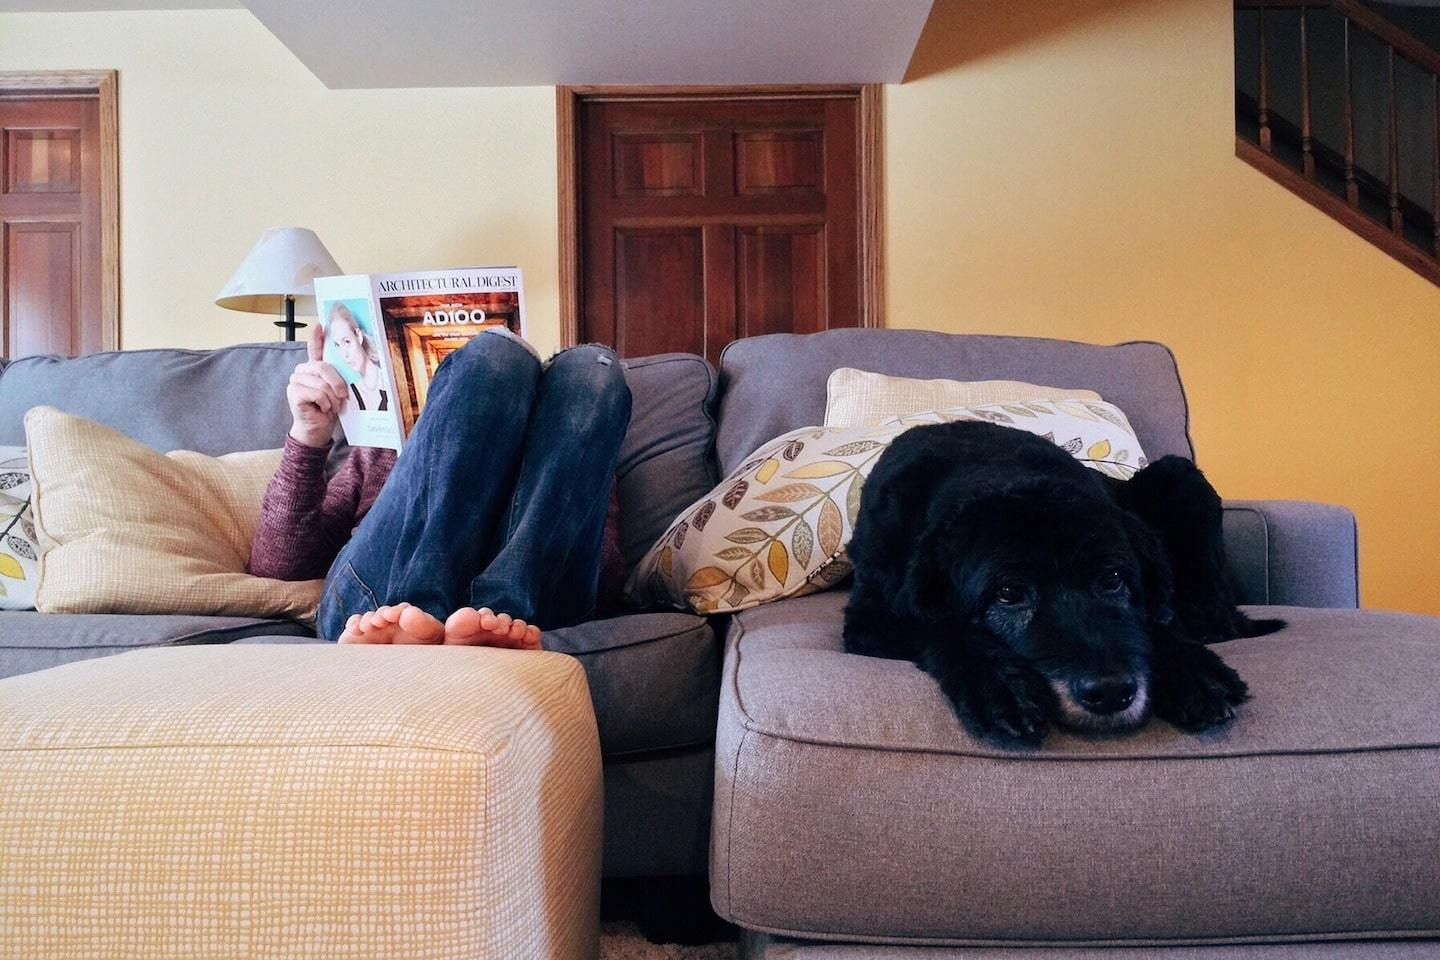 person reading on couch with dog next to them